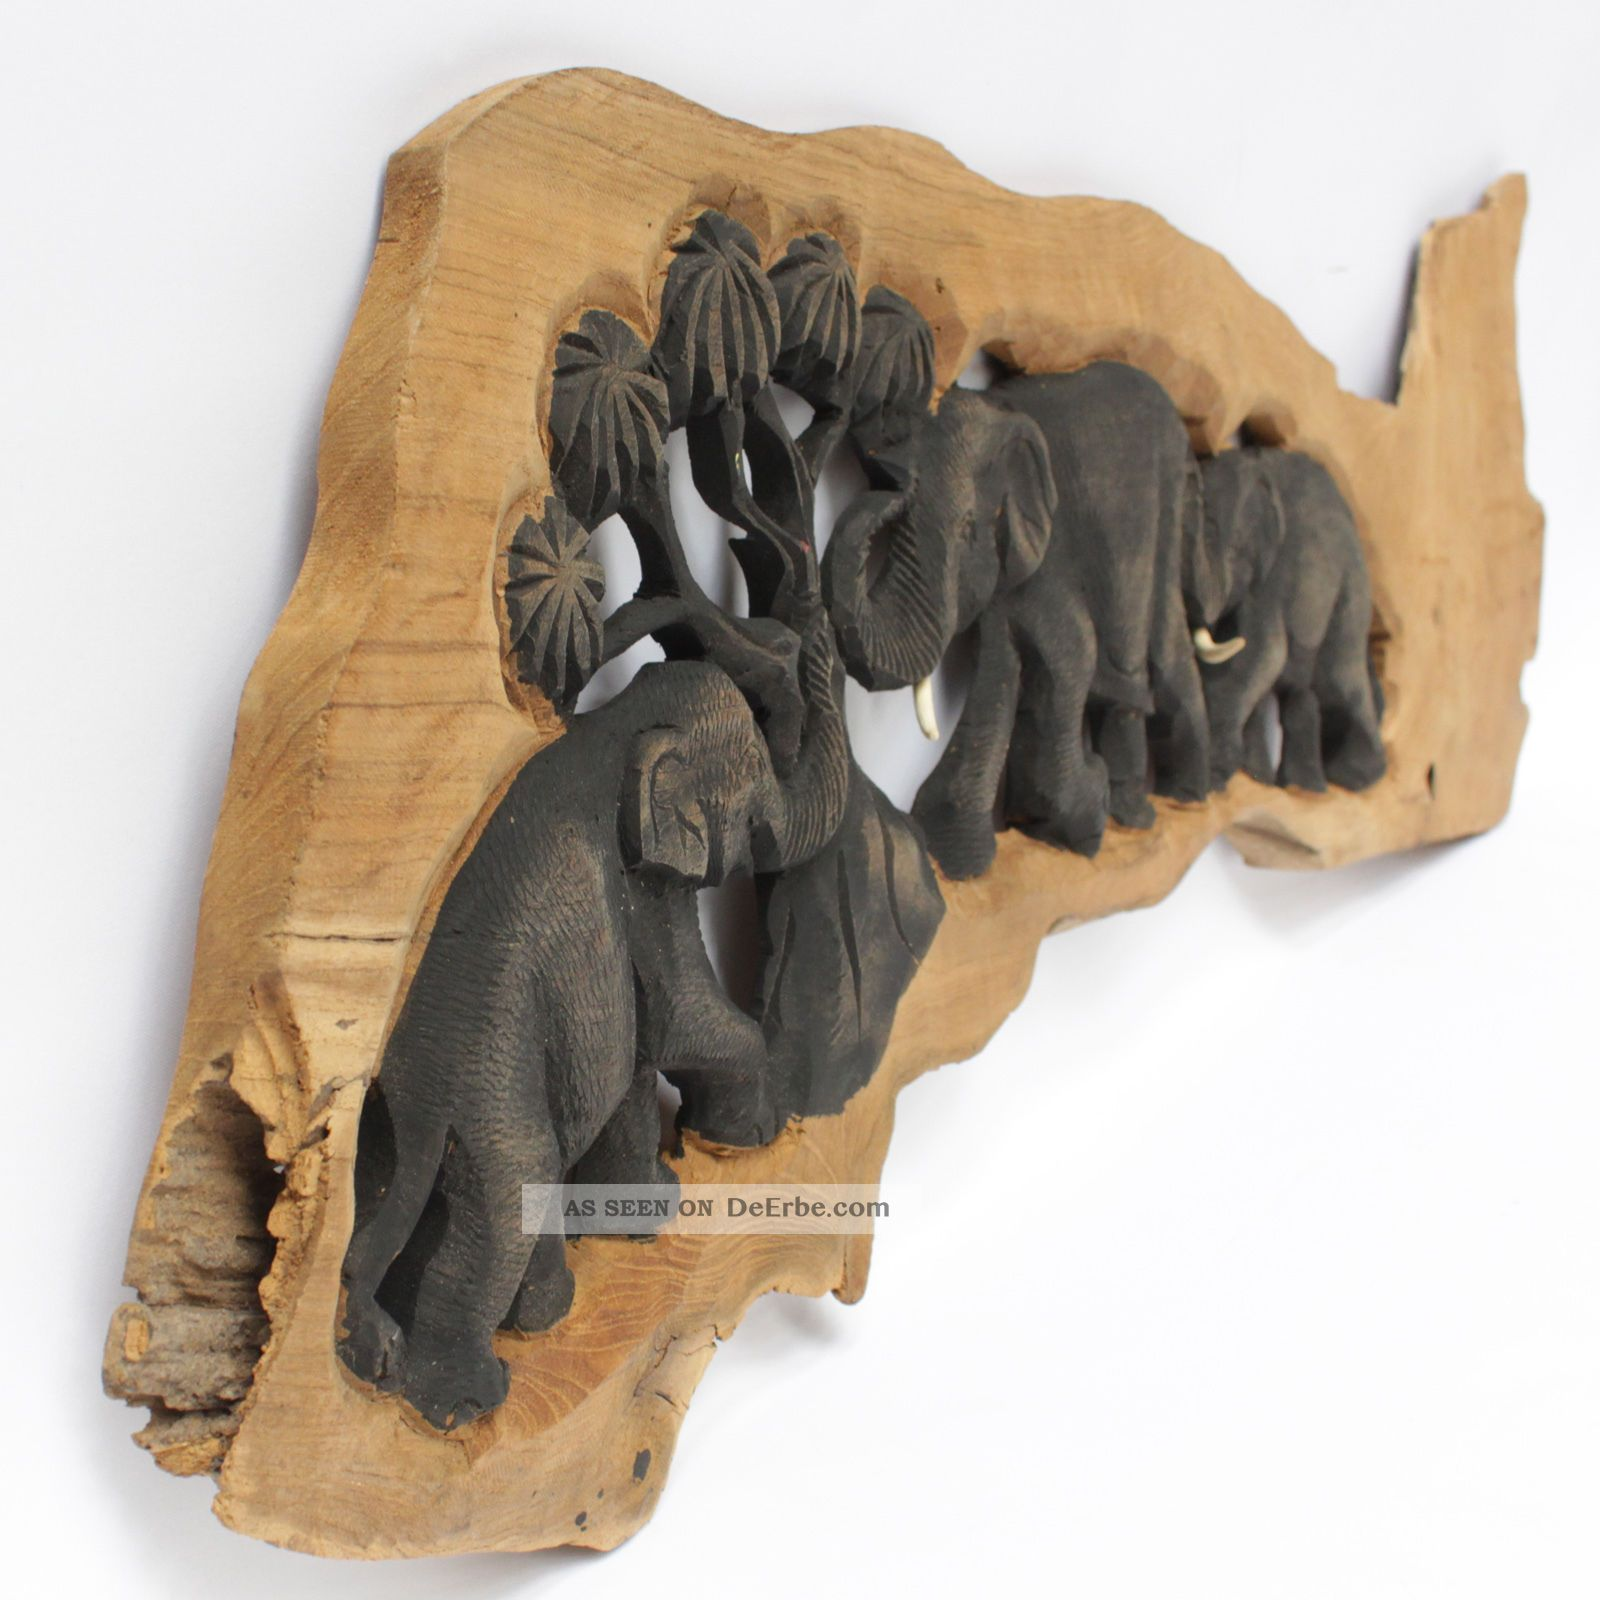 elefantenfamilie elefant holz baumstamm wandbild relief skulptur 72cm 19 06 6. Black Bedroom Furniture Sets. Home Design Ideas